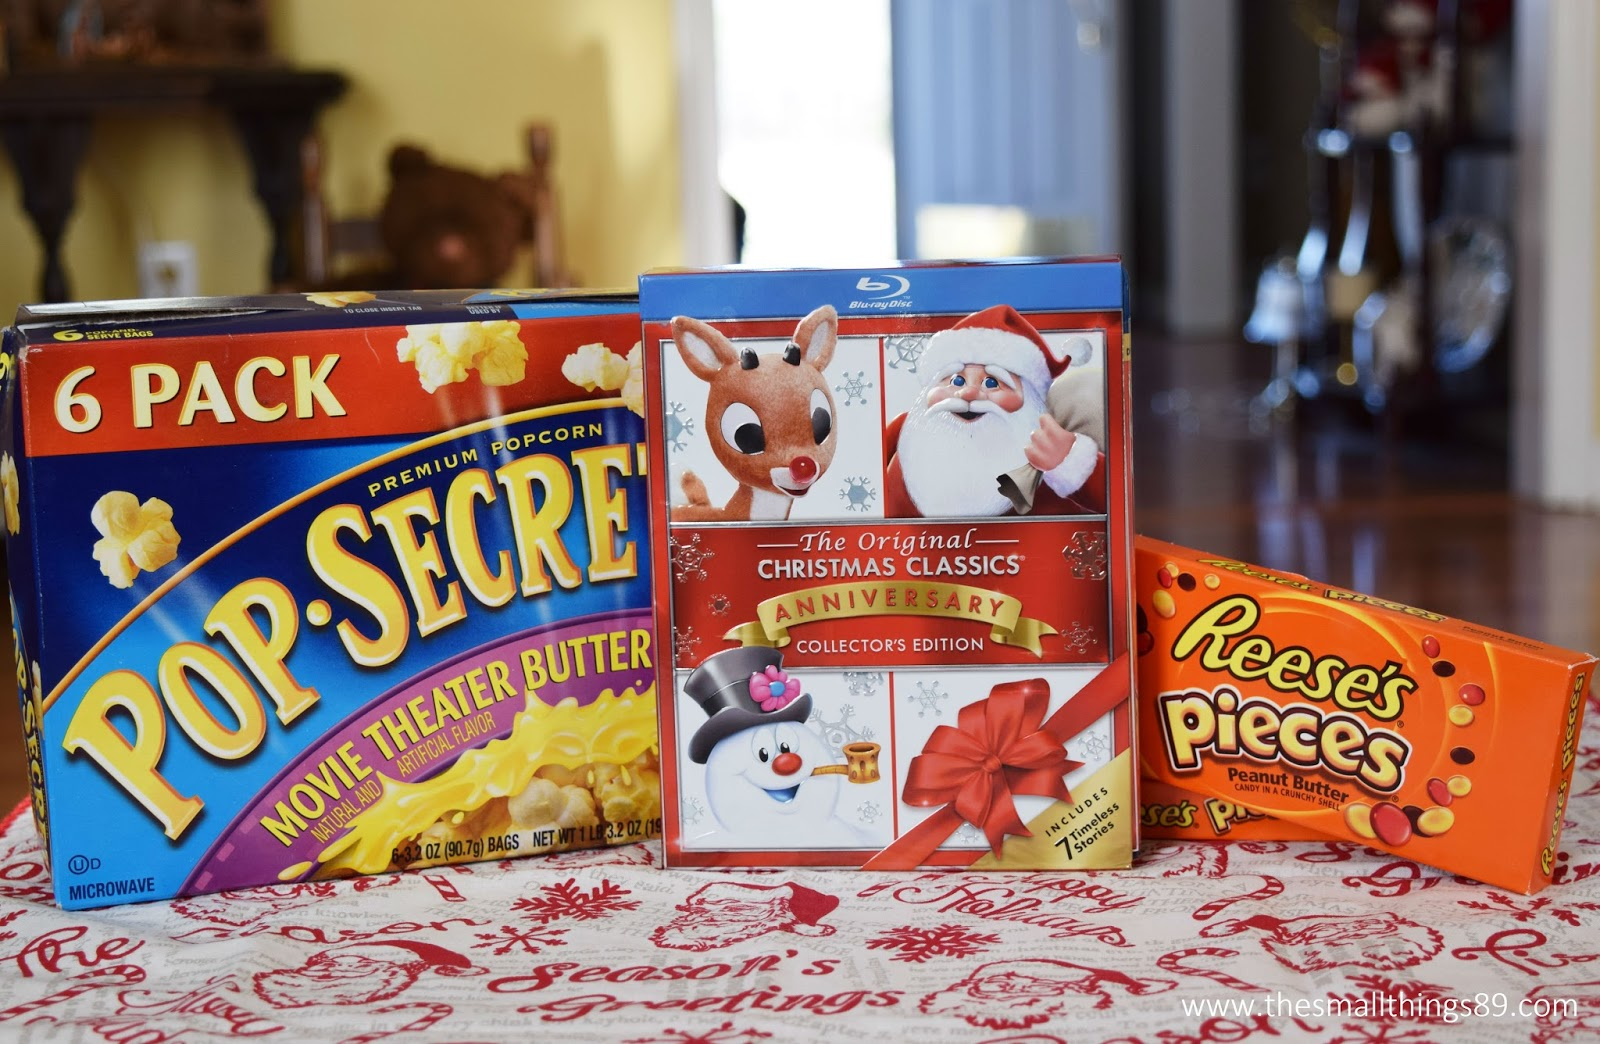 i am also so excited to share that pop secret popcorn and reeses pieces have joined together with these christmas classics to help the holidays really pop